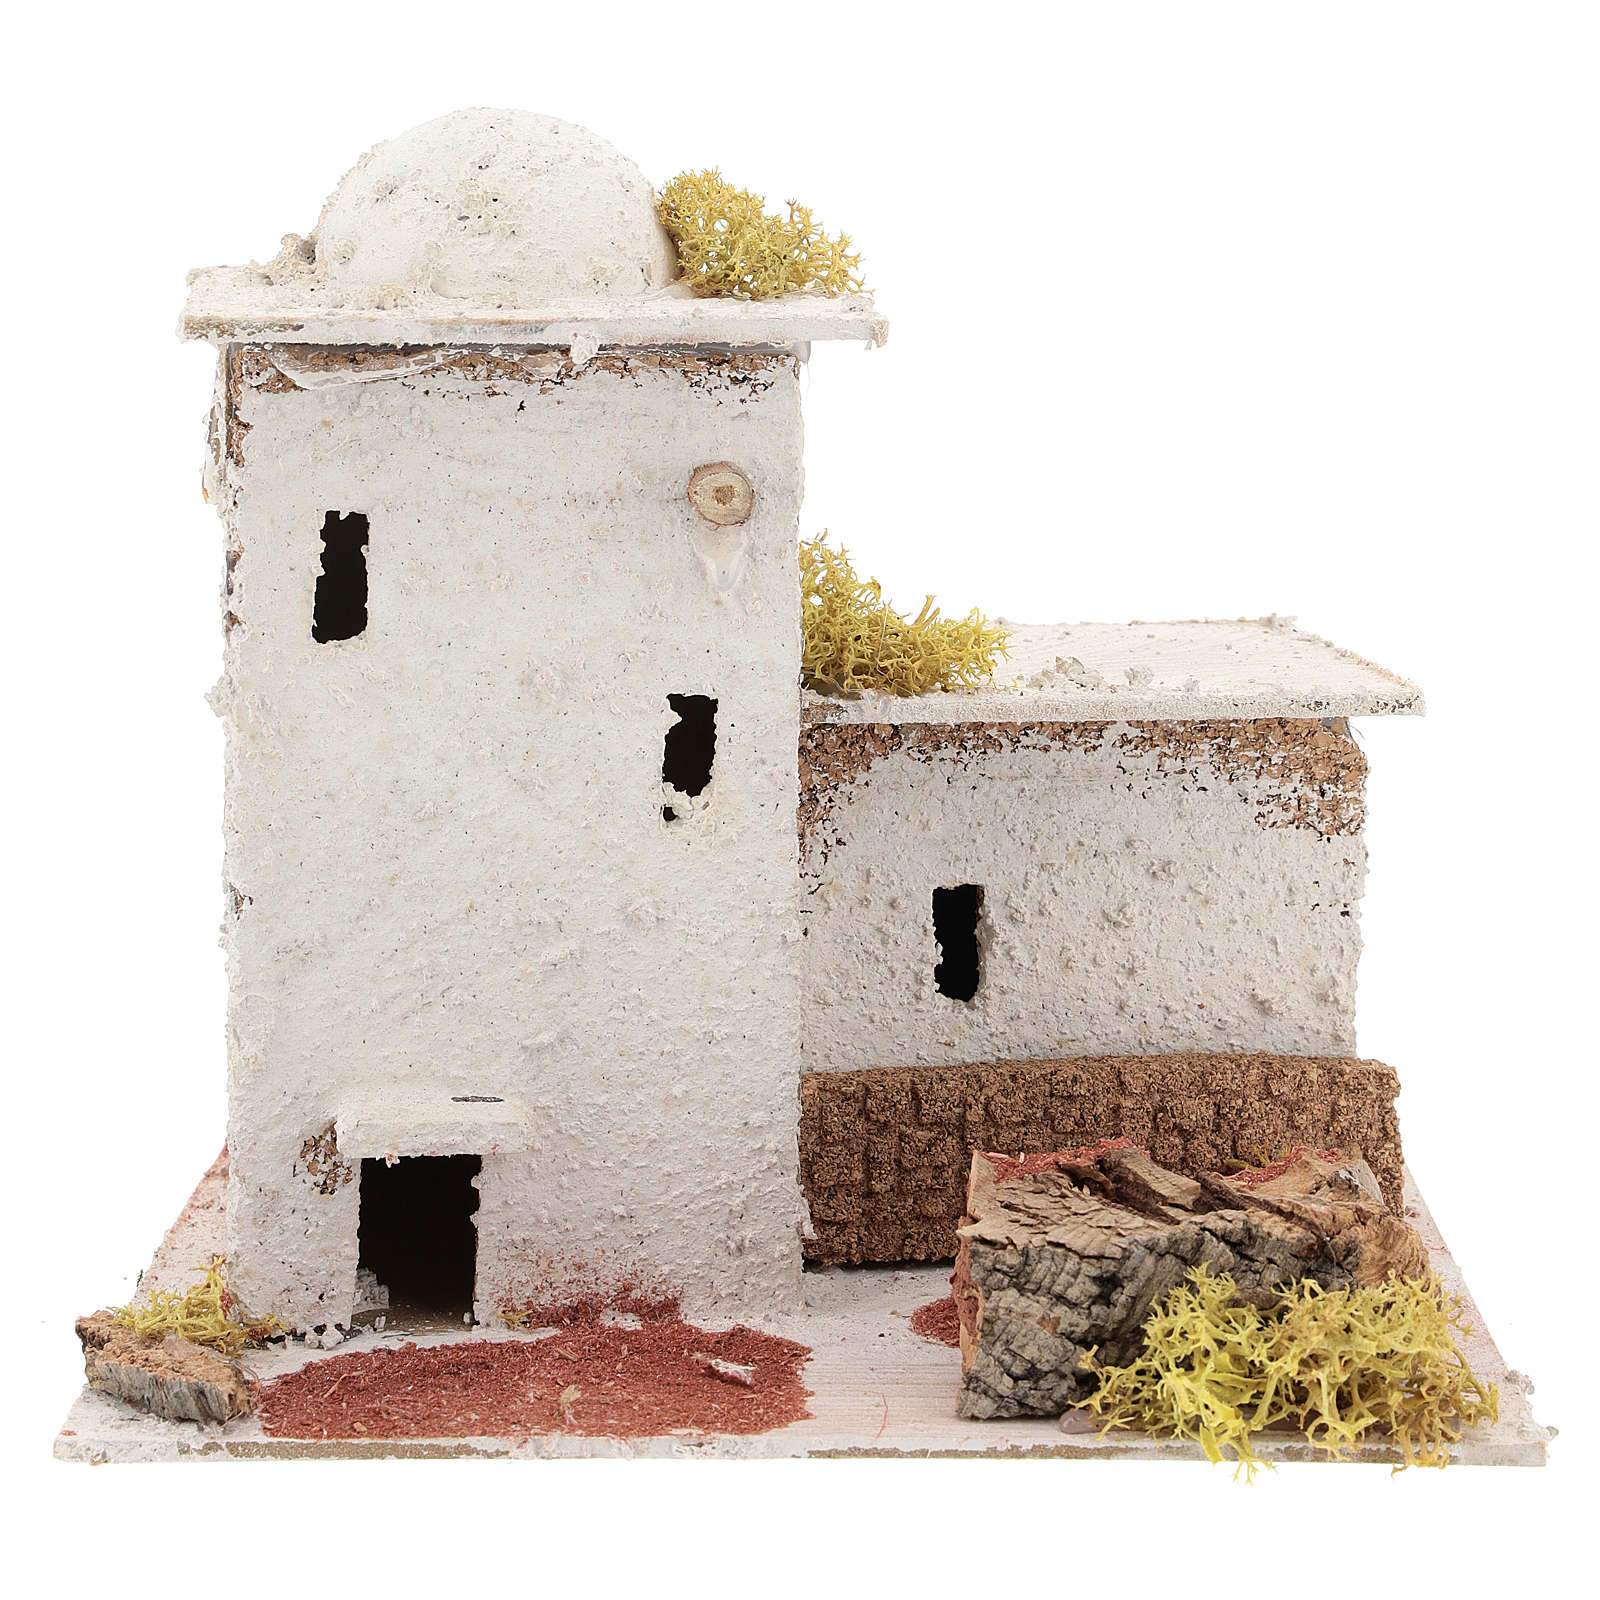 Arabic style house with fence for Neapolitan Nativity scene of 6 cm 4